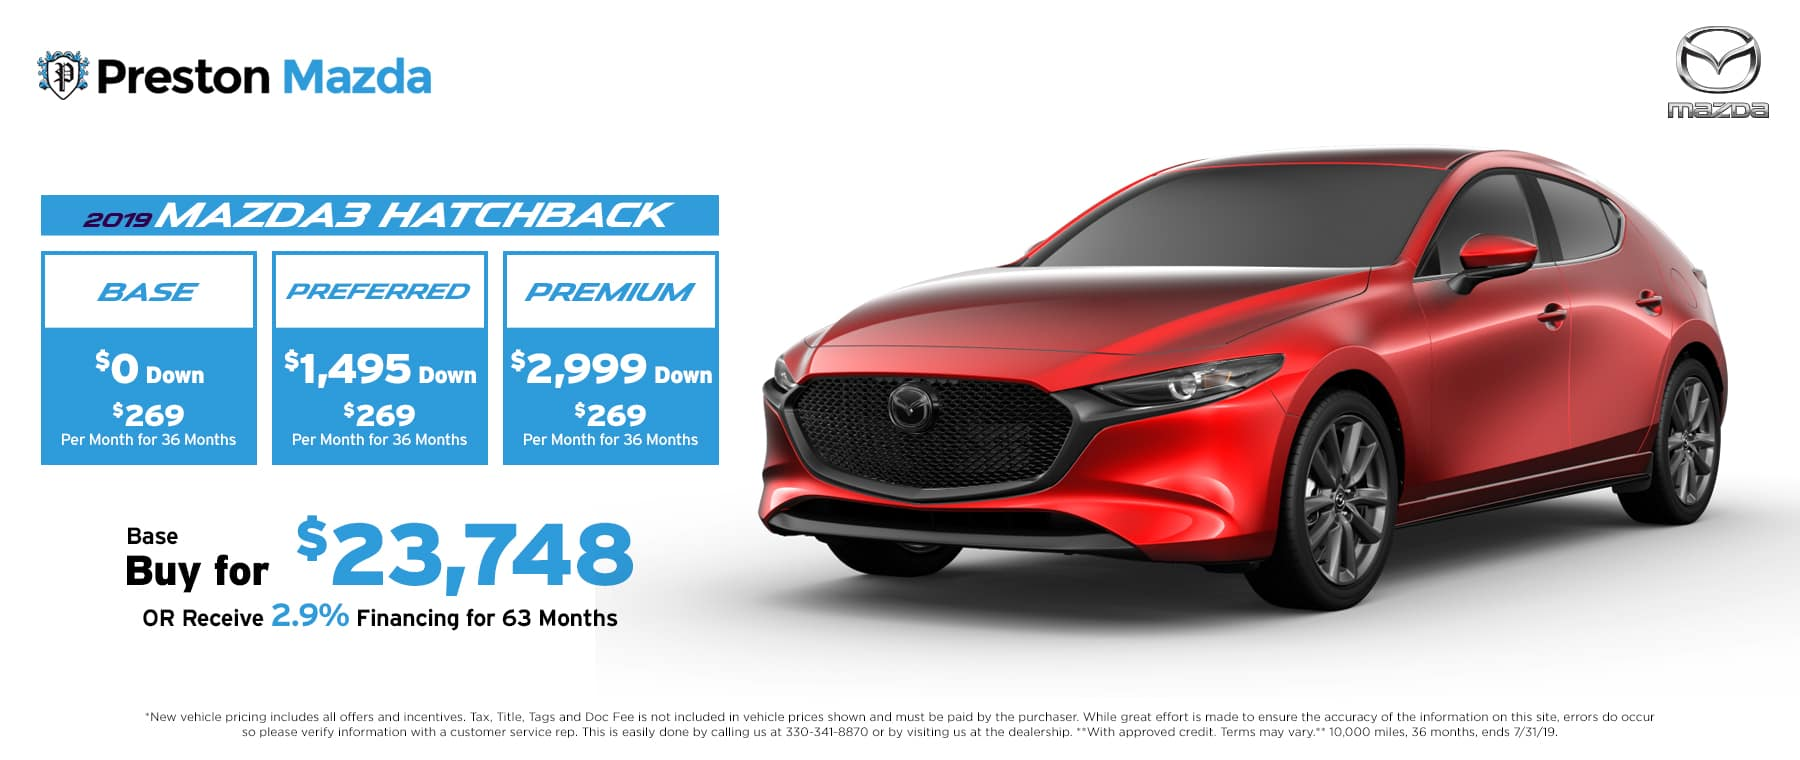 July special on the 2019 Mazda3